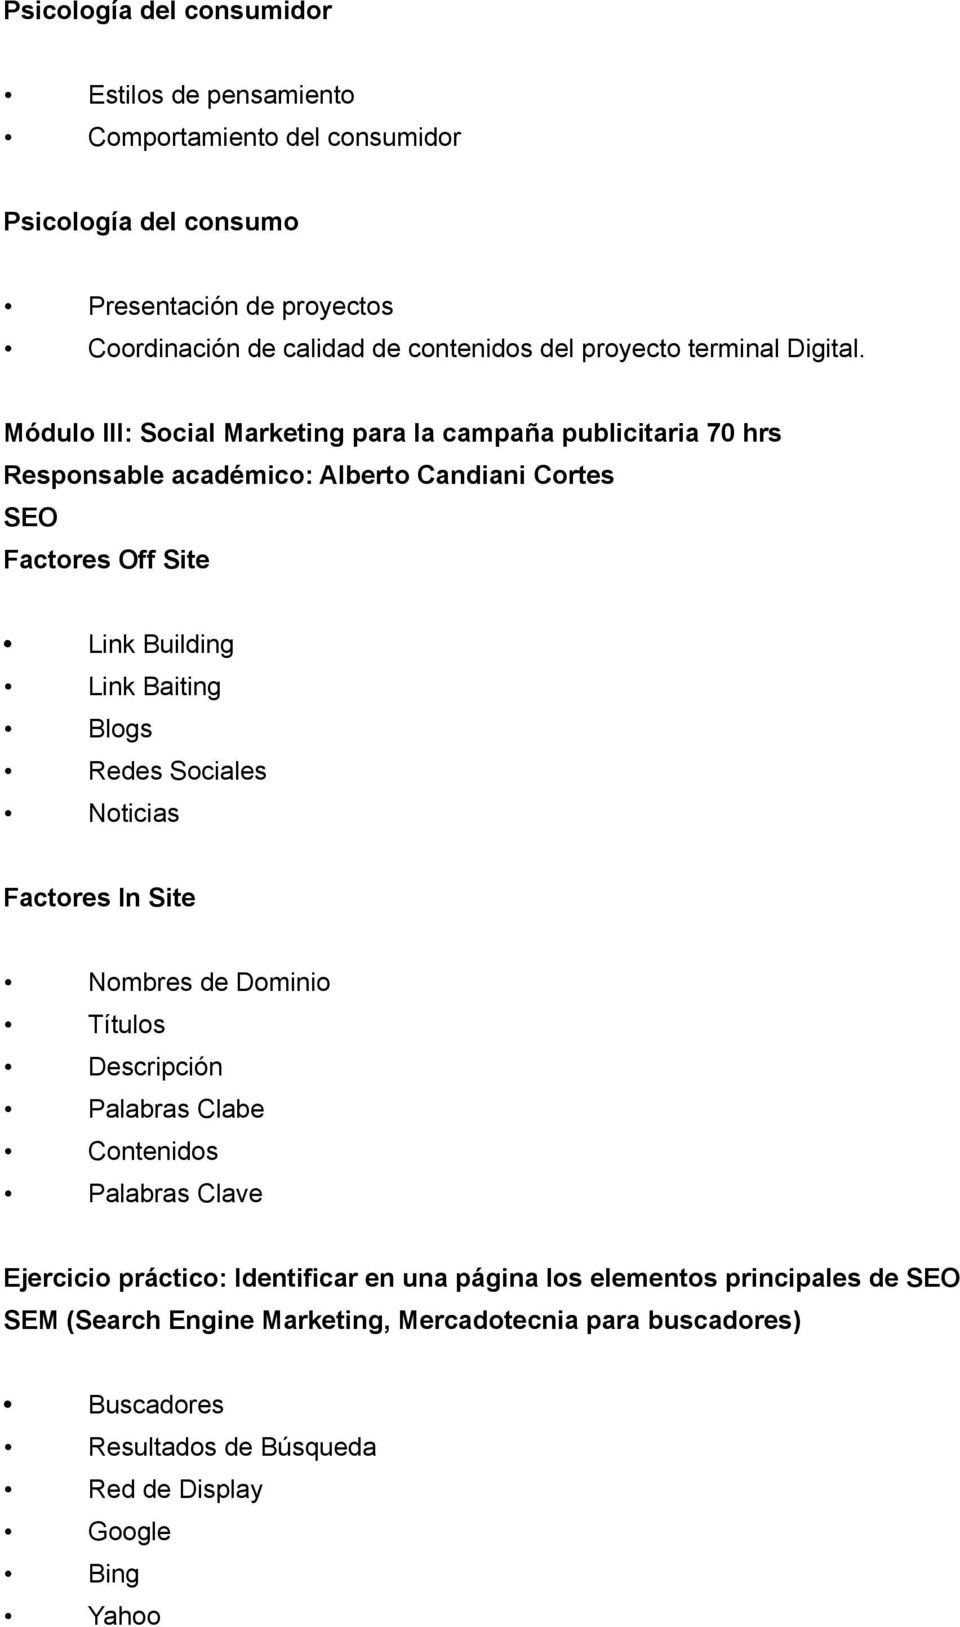 Módulo III: Social Marketing para la campaña publicitaria 70 hrs Responsable académico: Alberto Candiani Cortes SEO Factores Off Site Link Building Link Baiting Blogs Redes